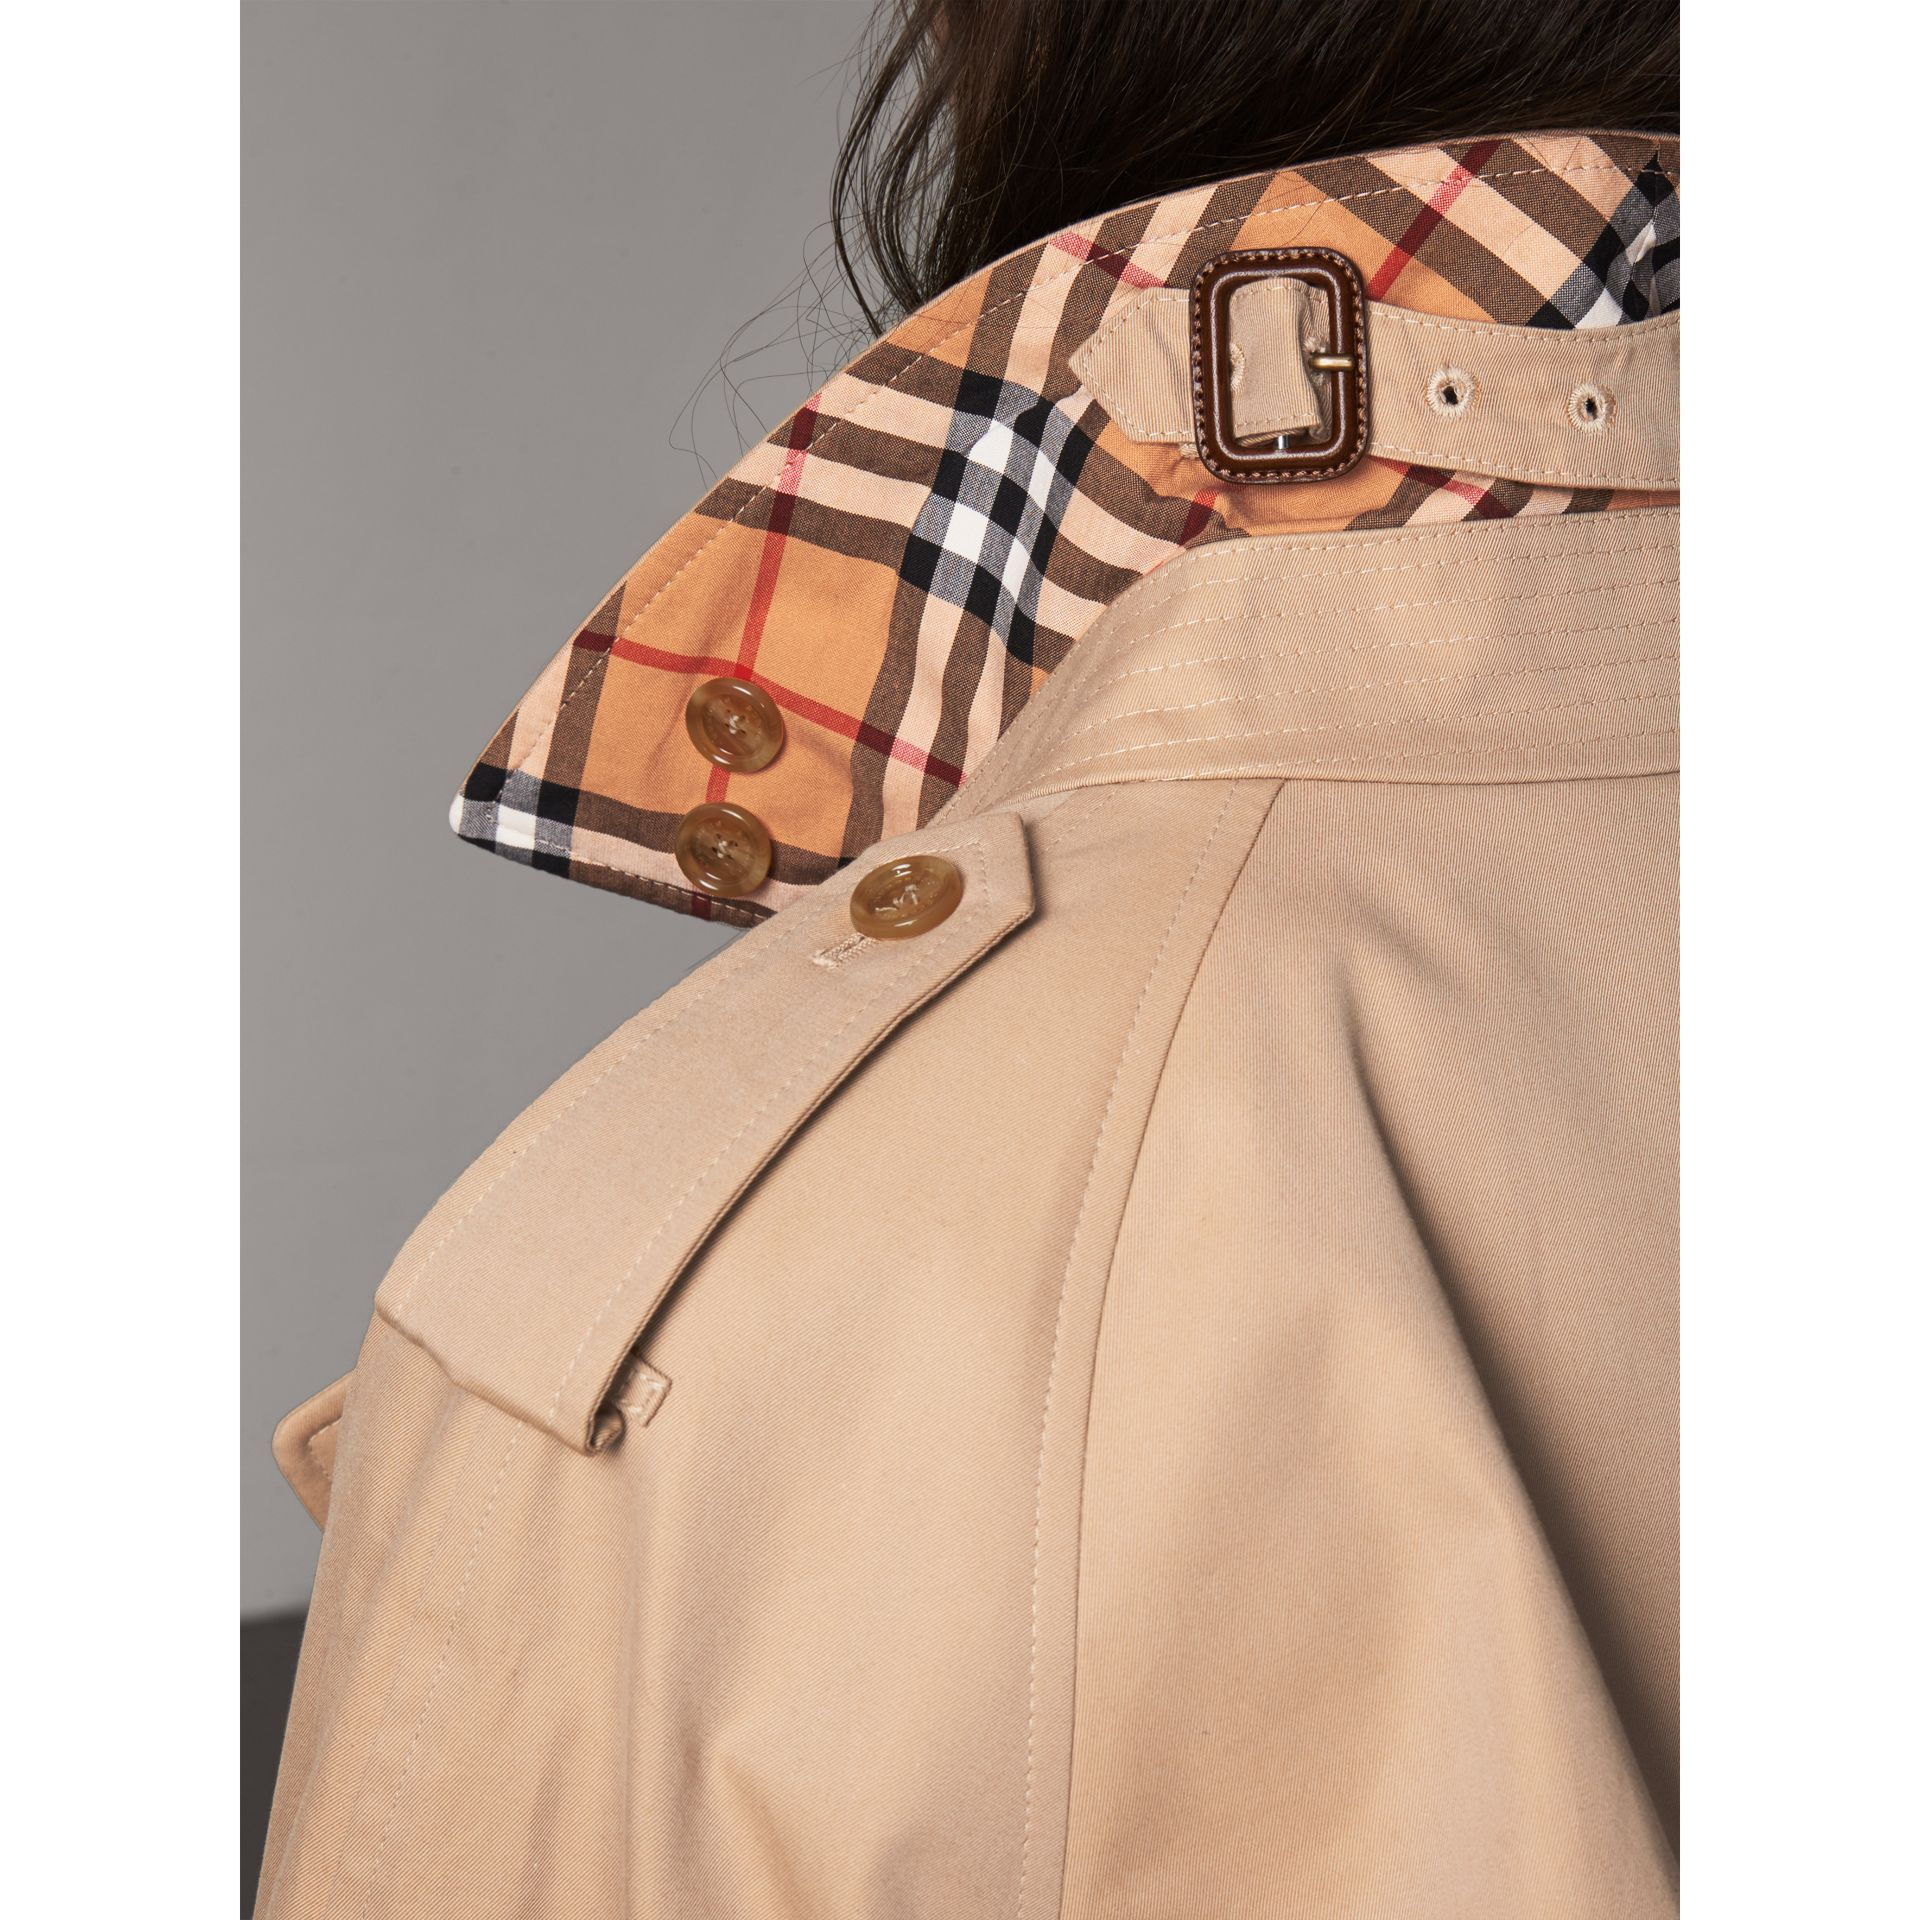 Trench coat in gabardine di cotone con bottoni decorati (Miele) - Donna | Burberry - immagine della galleria 6